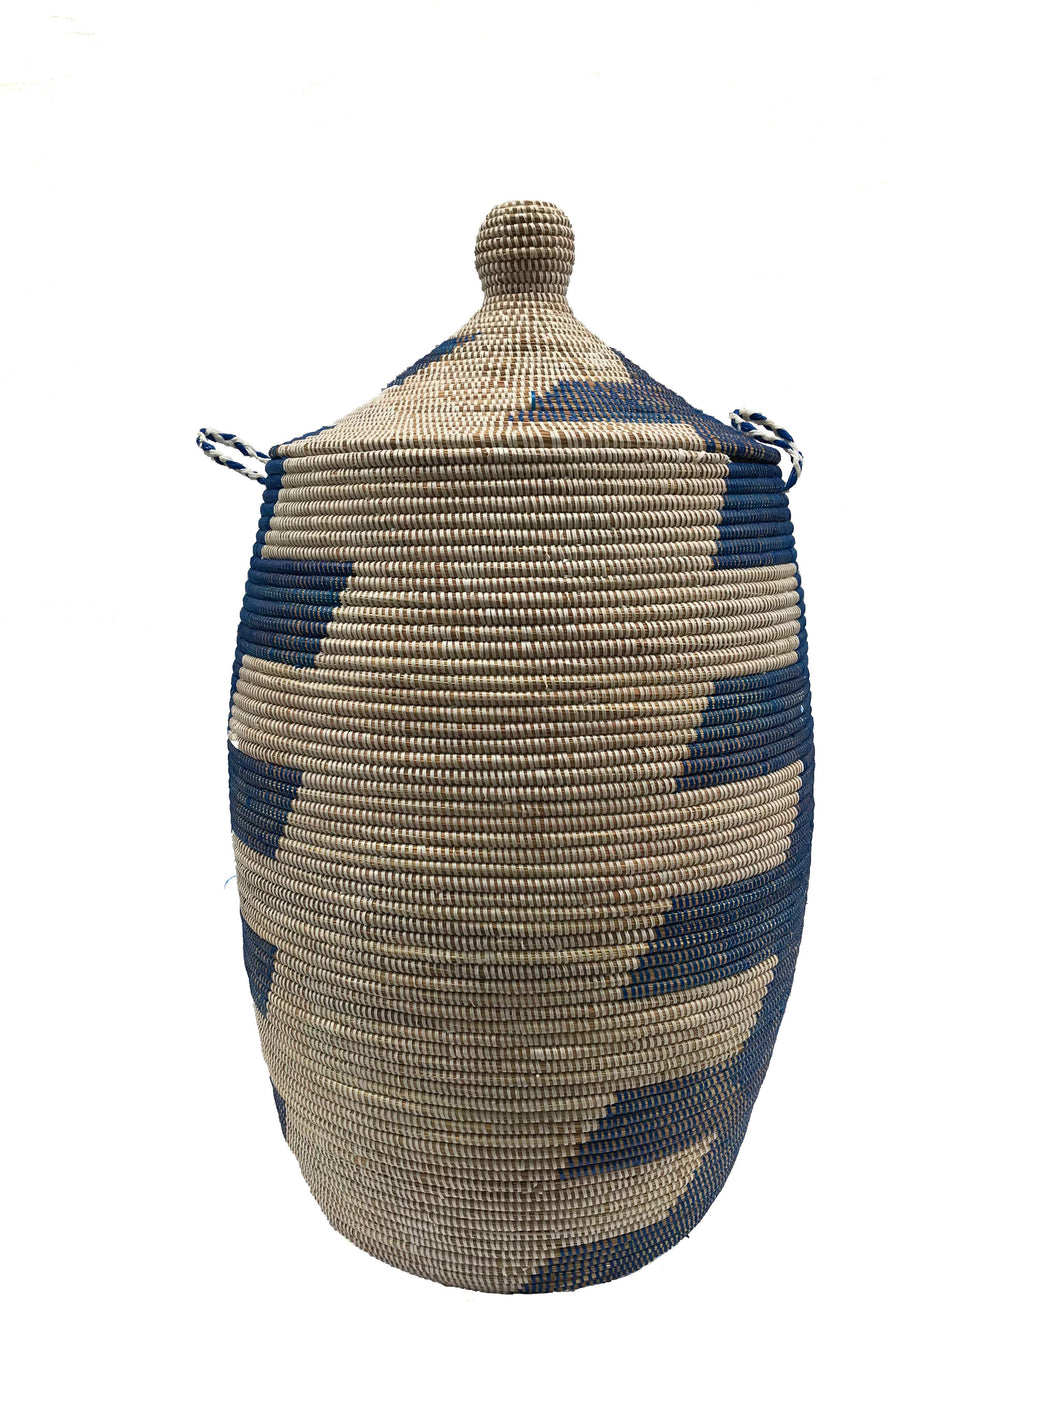 Senegalese Woven Basket Laundry Hamper Blue and White - Now Accepting Pre-Orders! - souks du monde